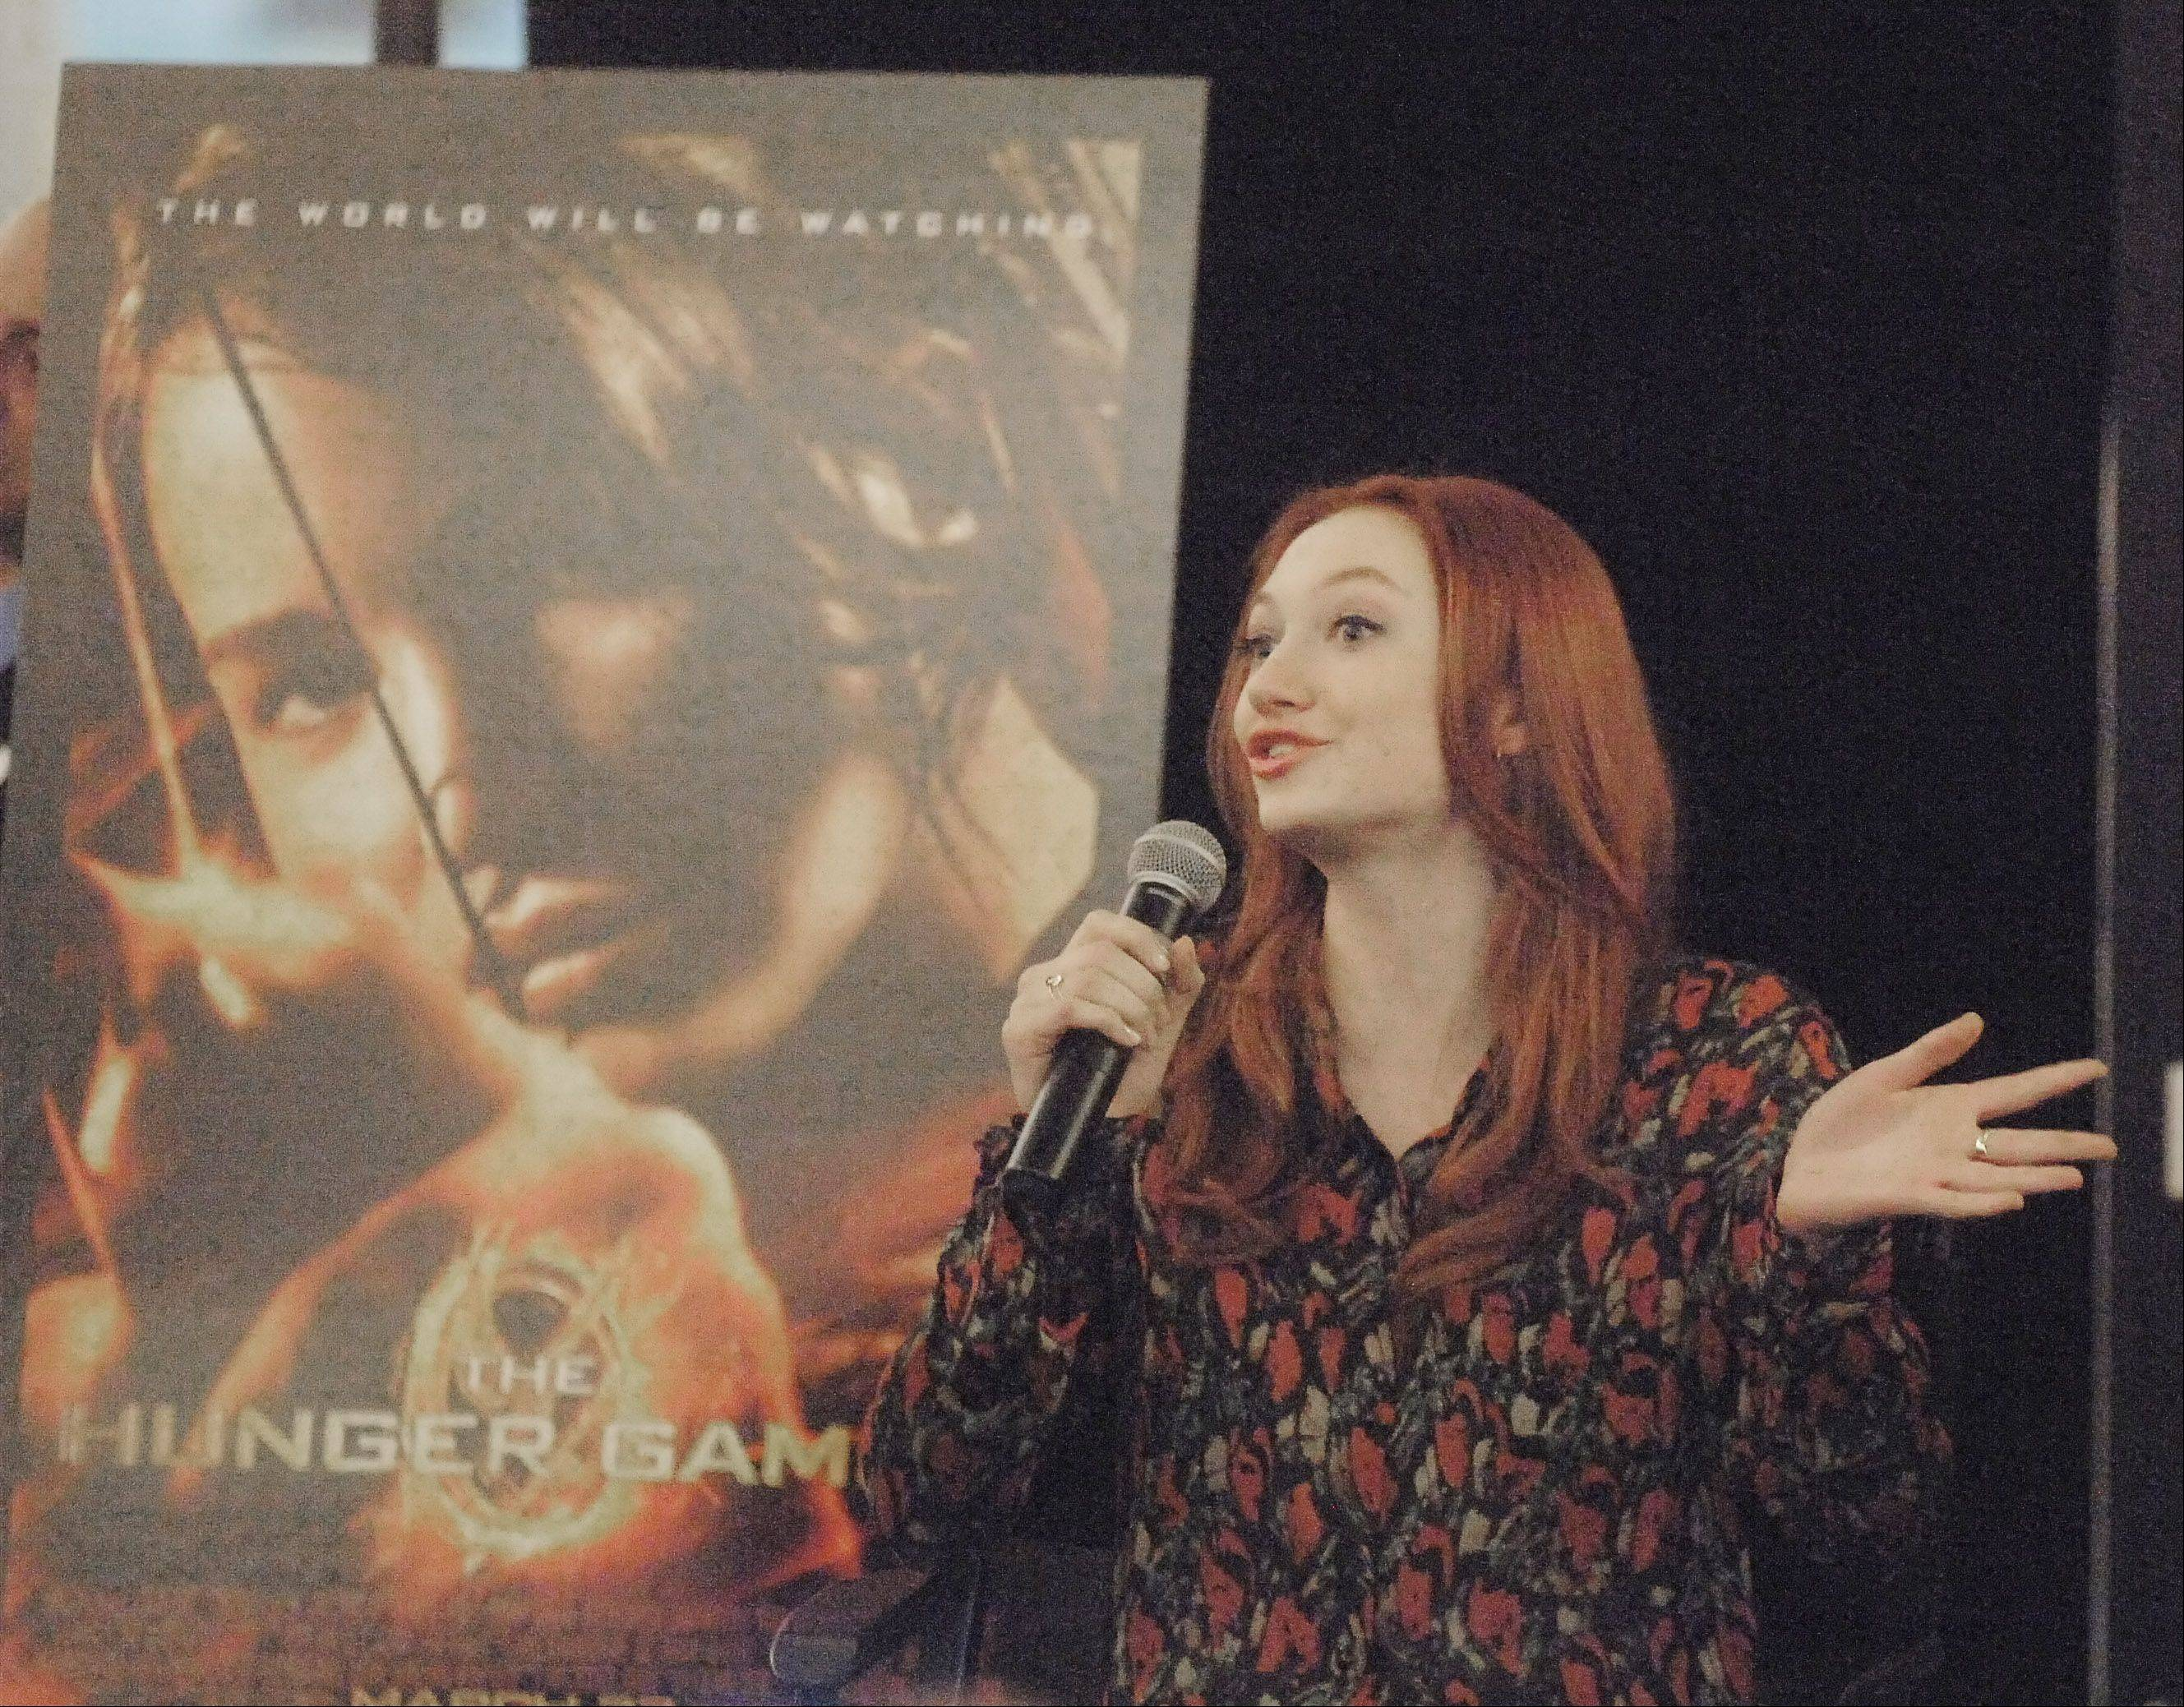 """The Hunger Games"" actor Jacqueline Emerson will appear at the Fiction2Film convention at the Westin O'Hare Hotel in Rosemont."